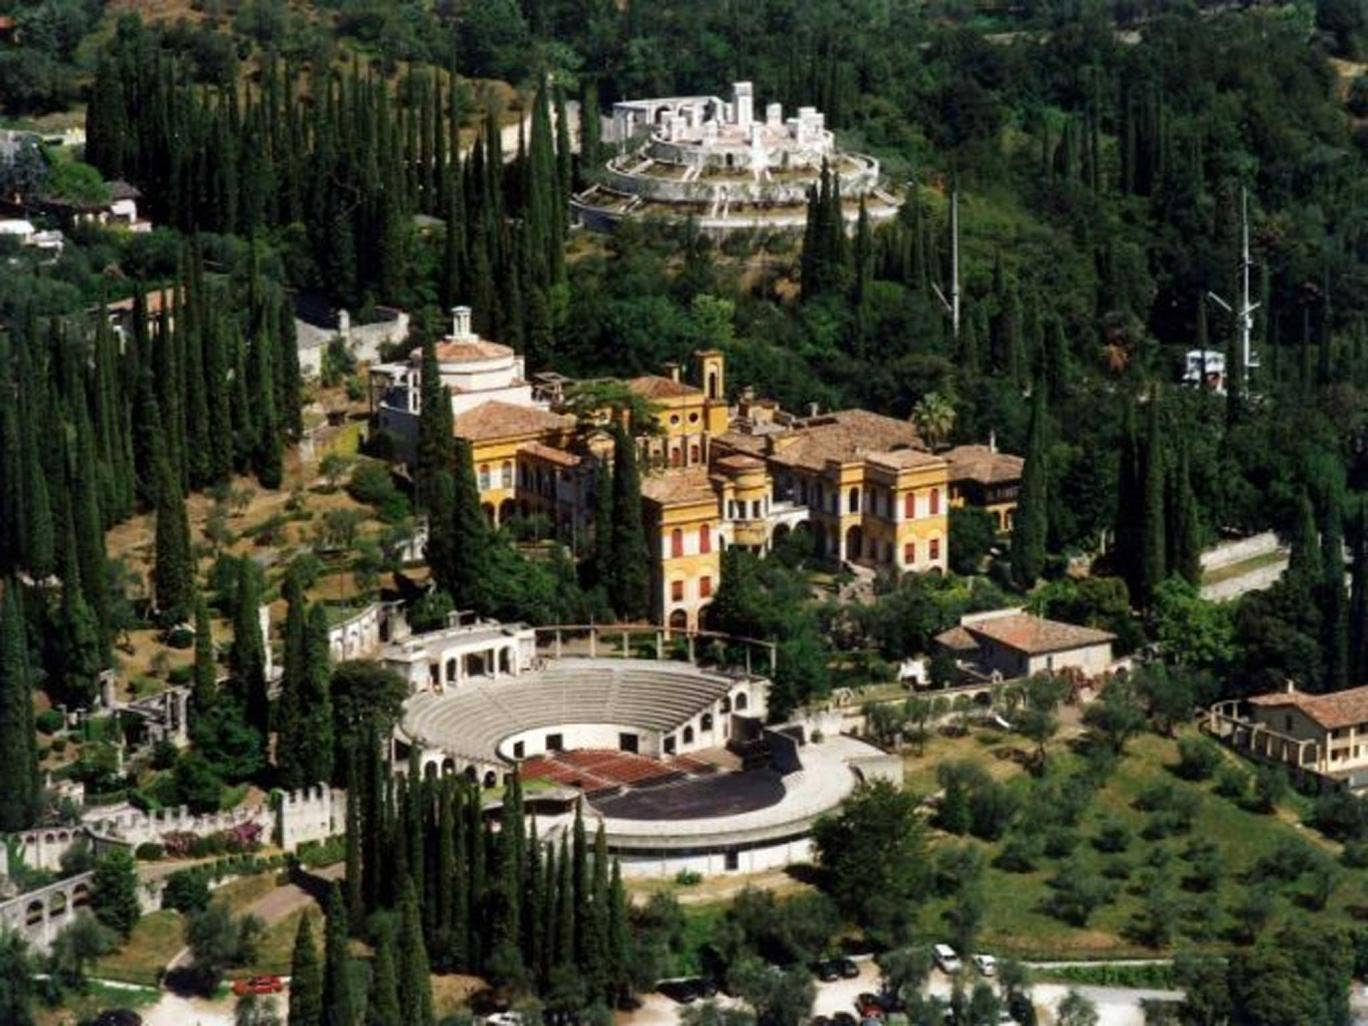 Pleasure palace: The lavish estate created by Gabriele D'Annunzio is now a museum